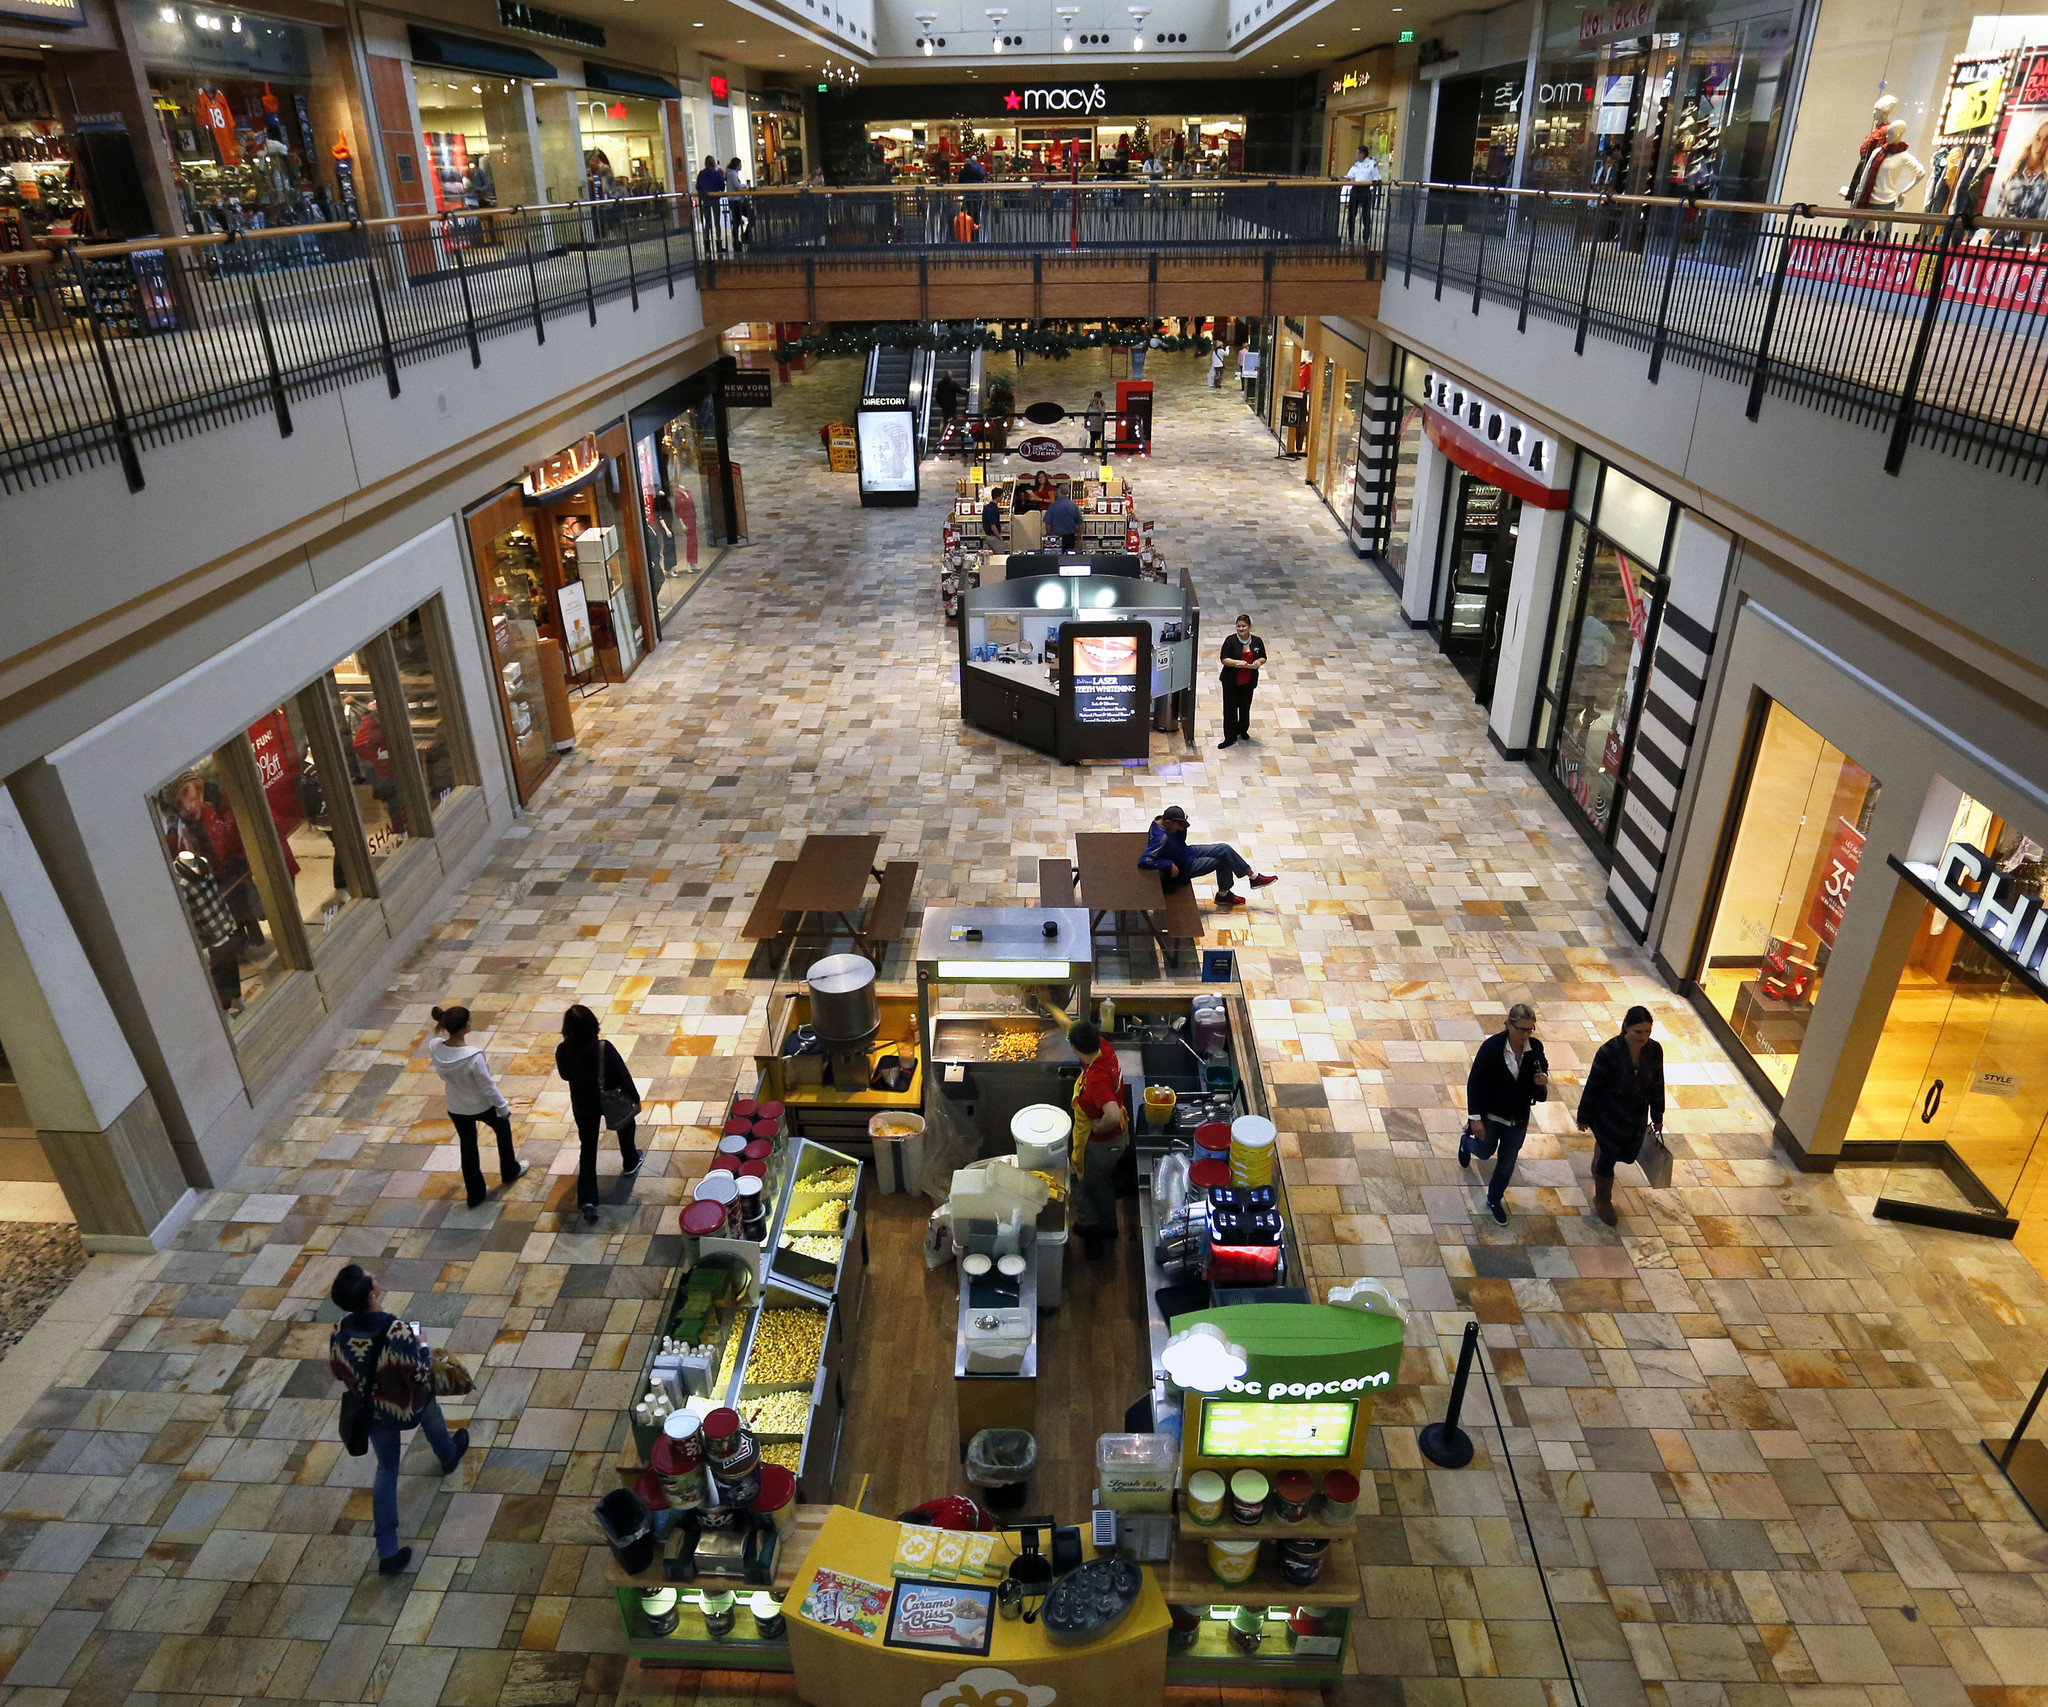 Retailers fail to offer what shoppers want, survey finds